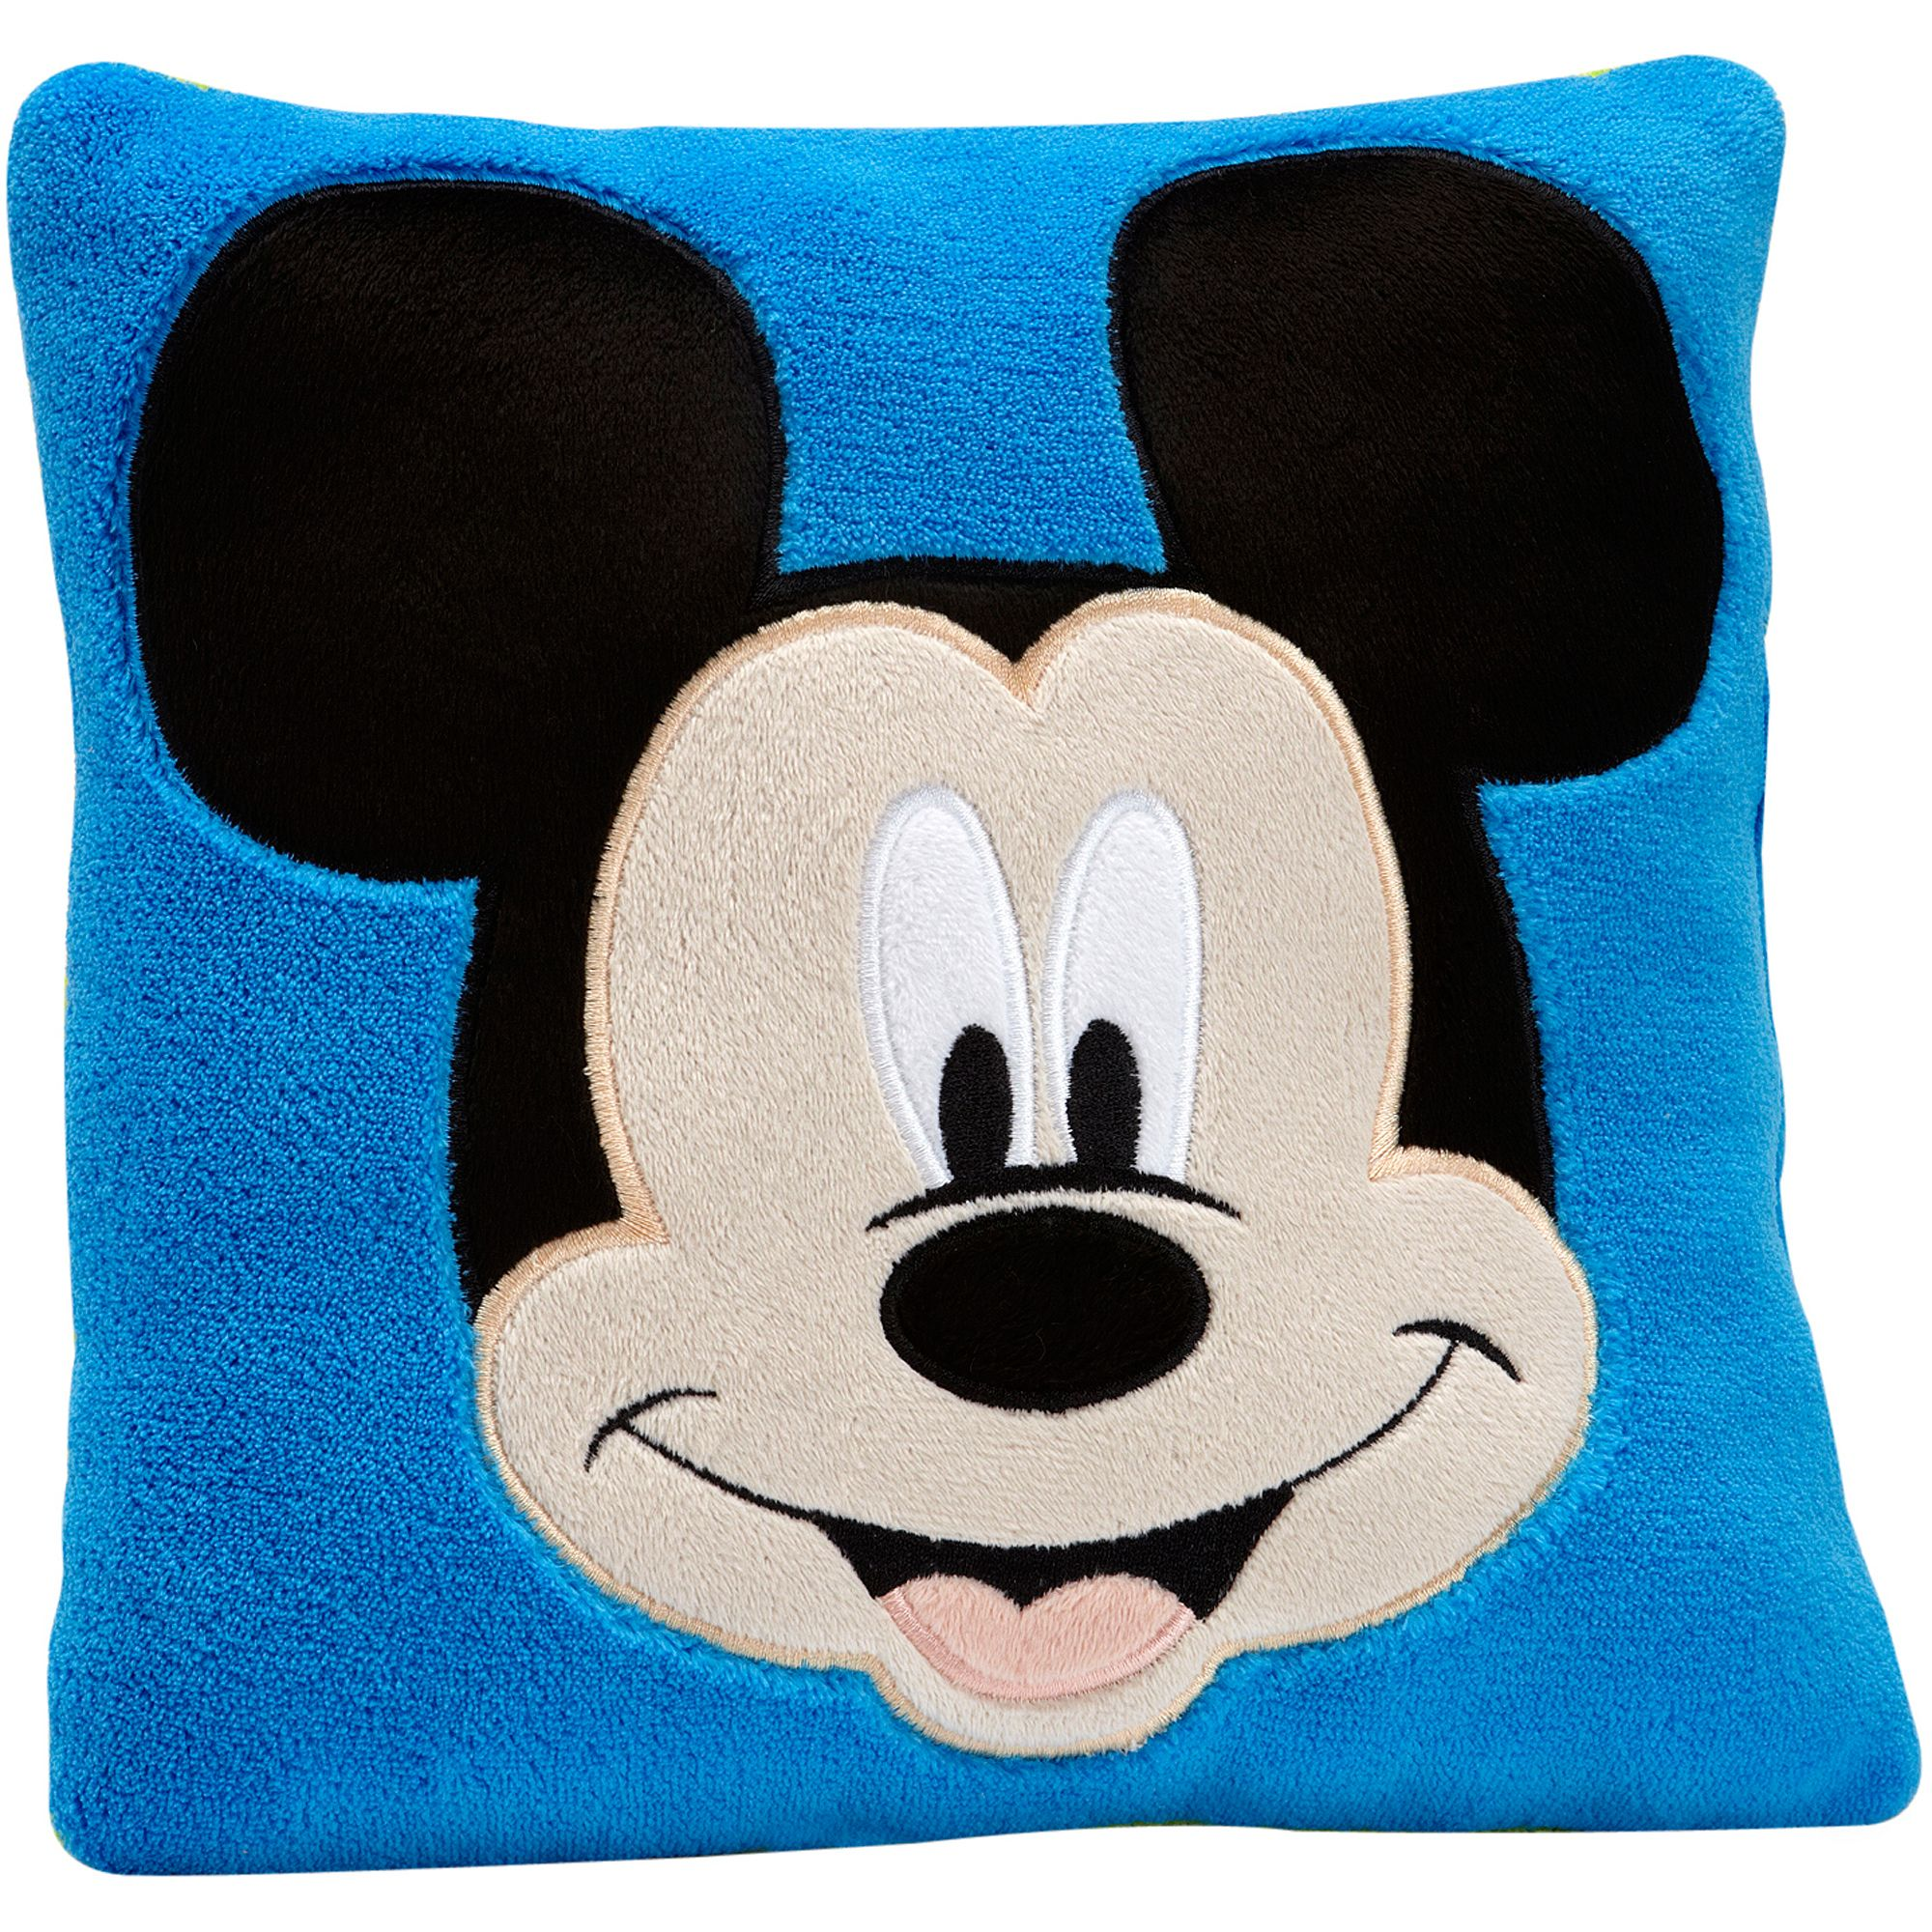 Disney Character Decorative Pillows in Various Characters